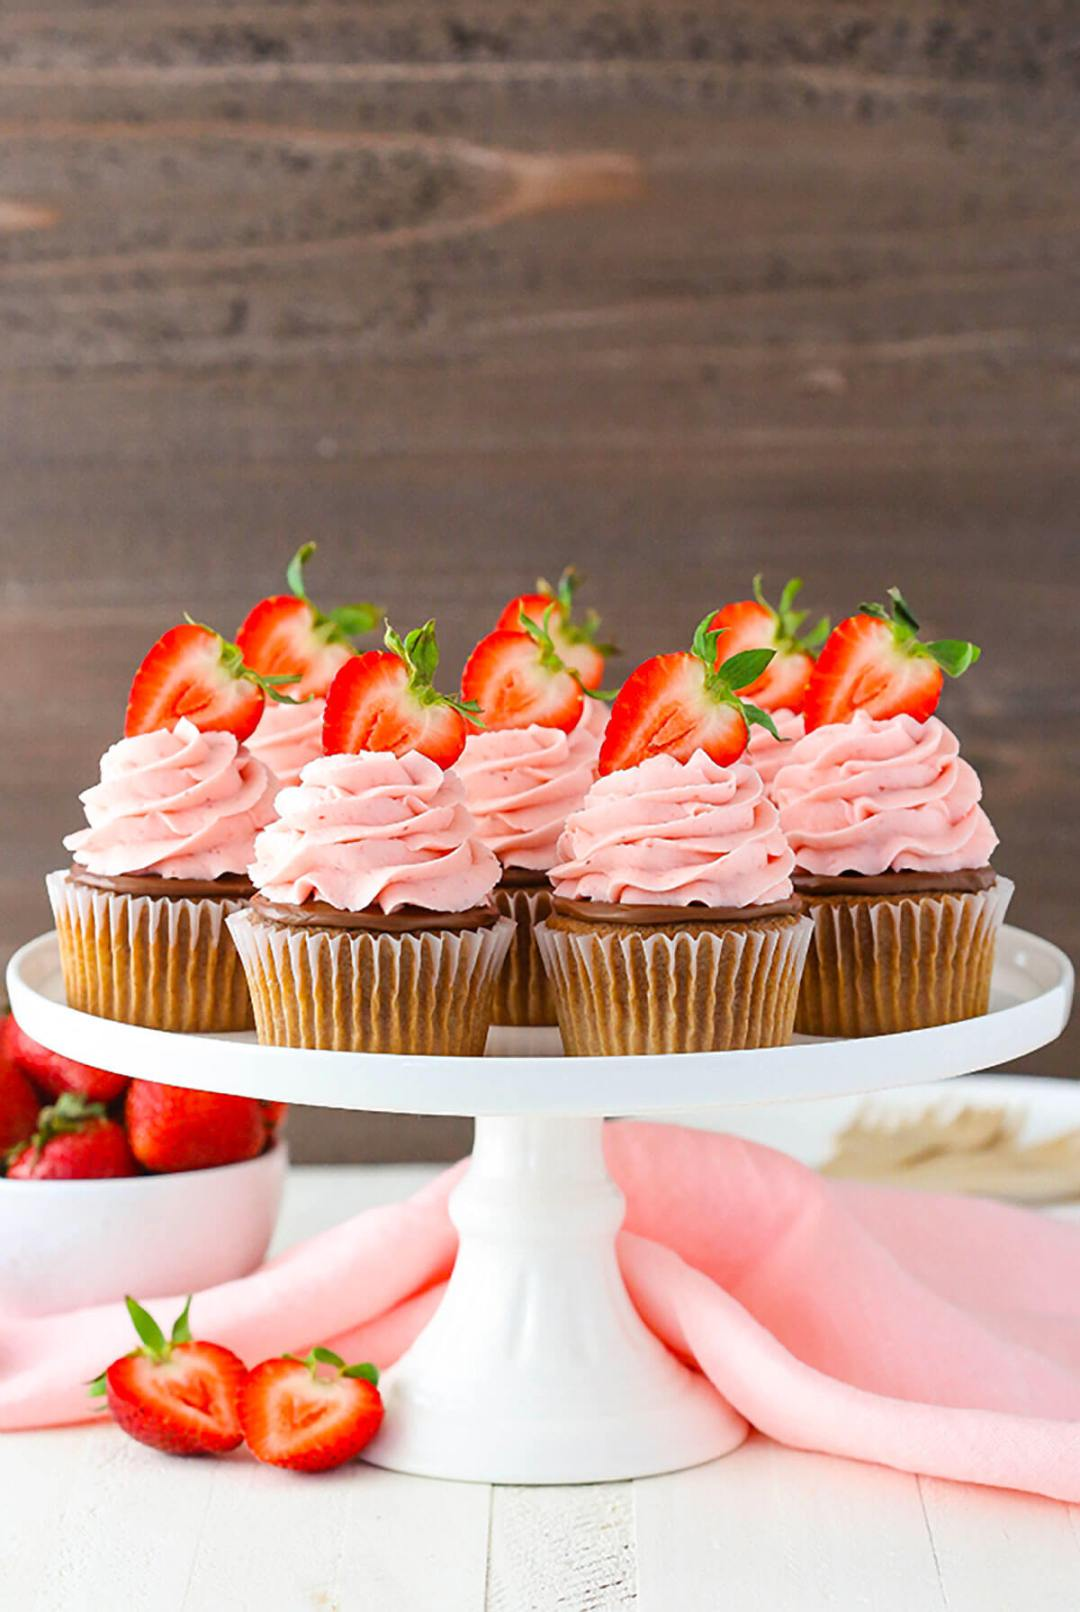 """Strawberry Nutella Cupcakes 'title =' Pastelitos de Strawberry Nutella '/></div data-recalc-dims=""""1""""> </div> </div> <section class=""""av_textblock_section """"> <div class="""